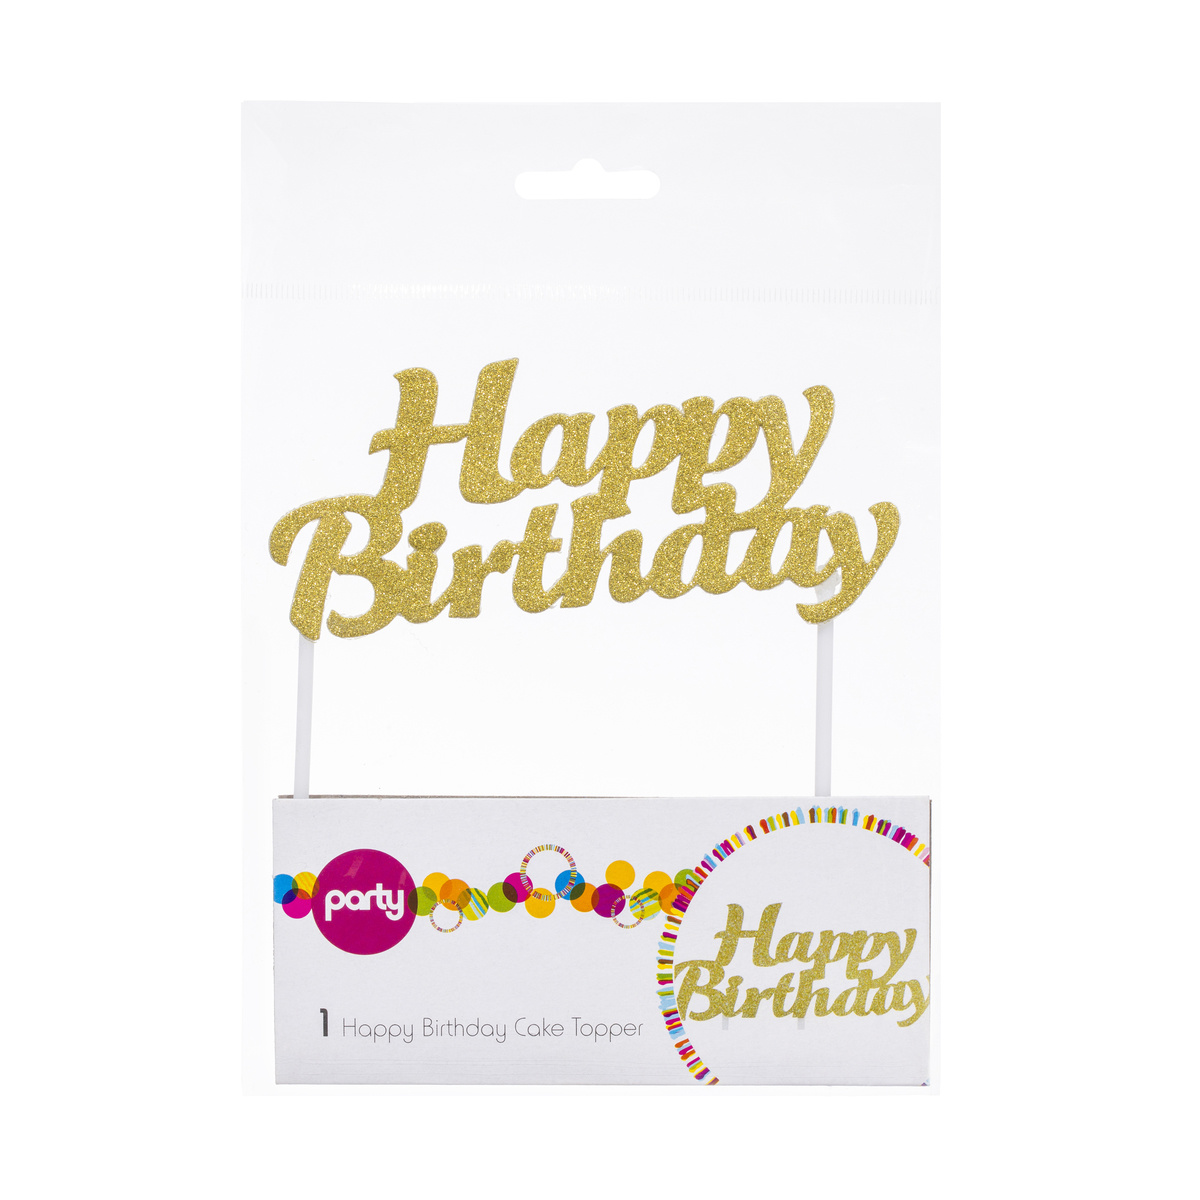 Cupcake Boxes Kmart Happy Birthday Cake Topper Kmart